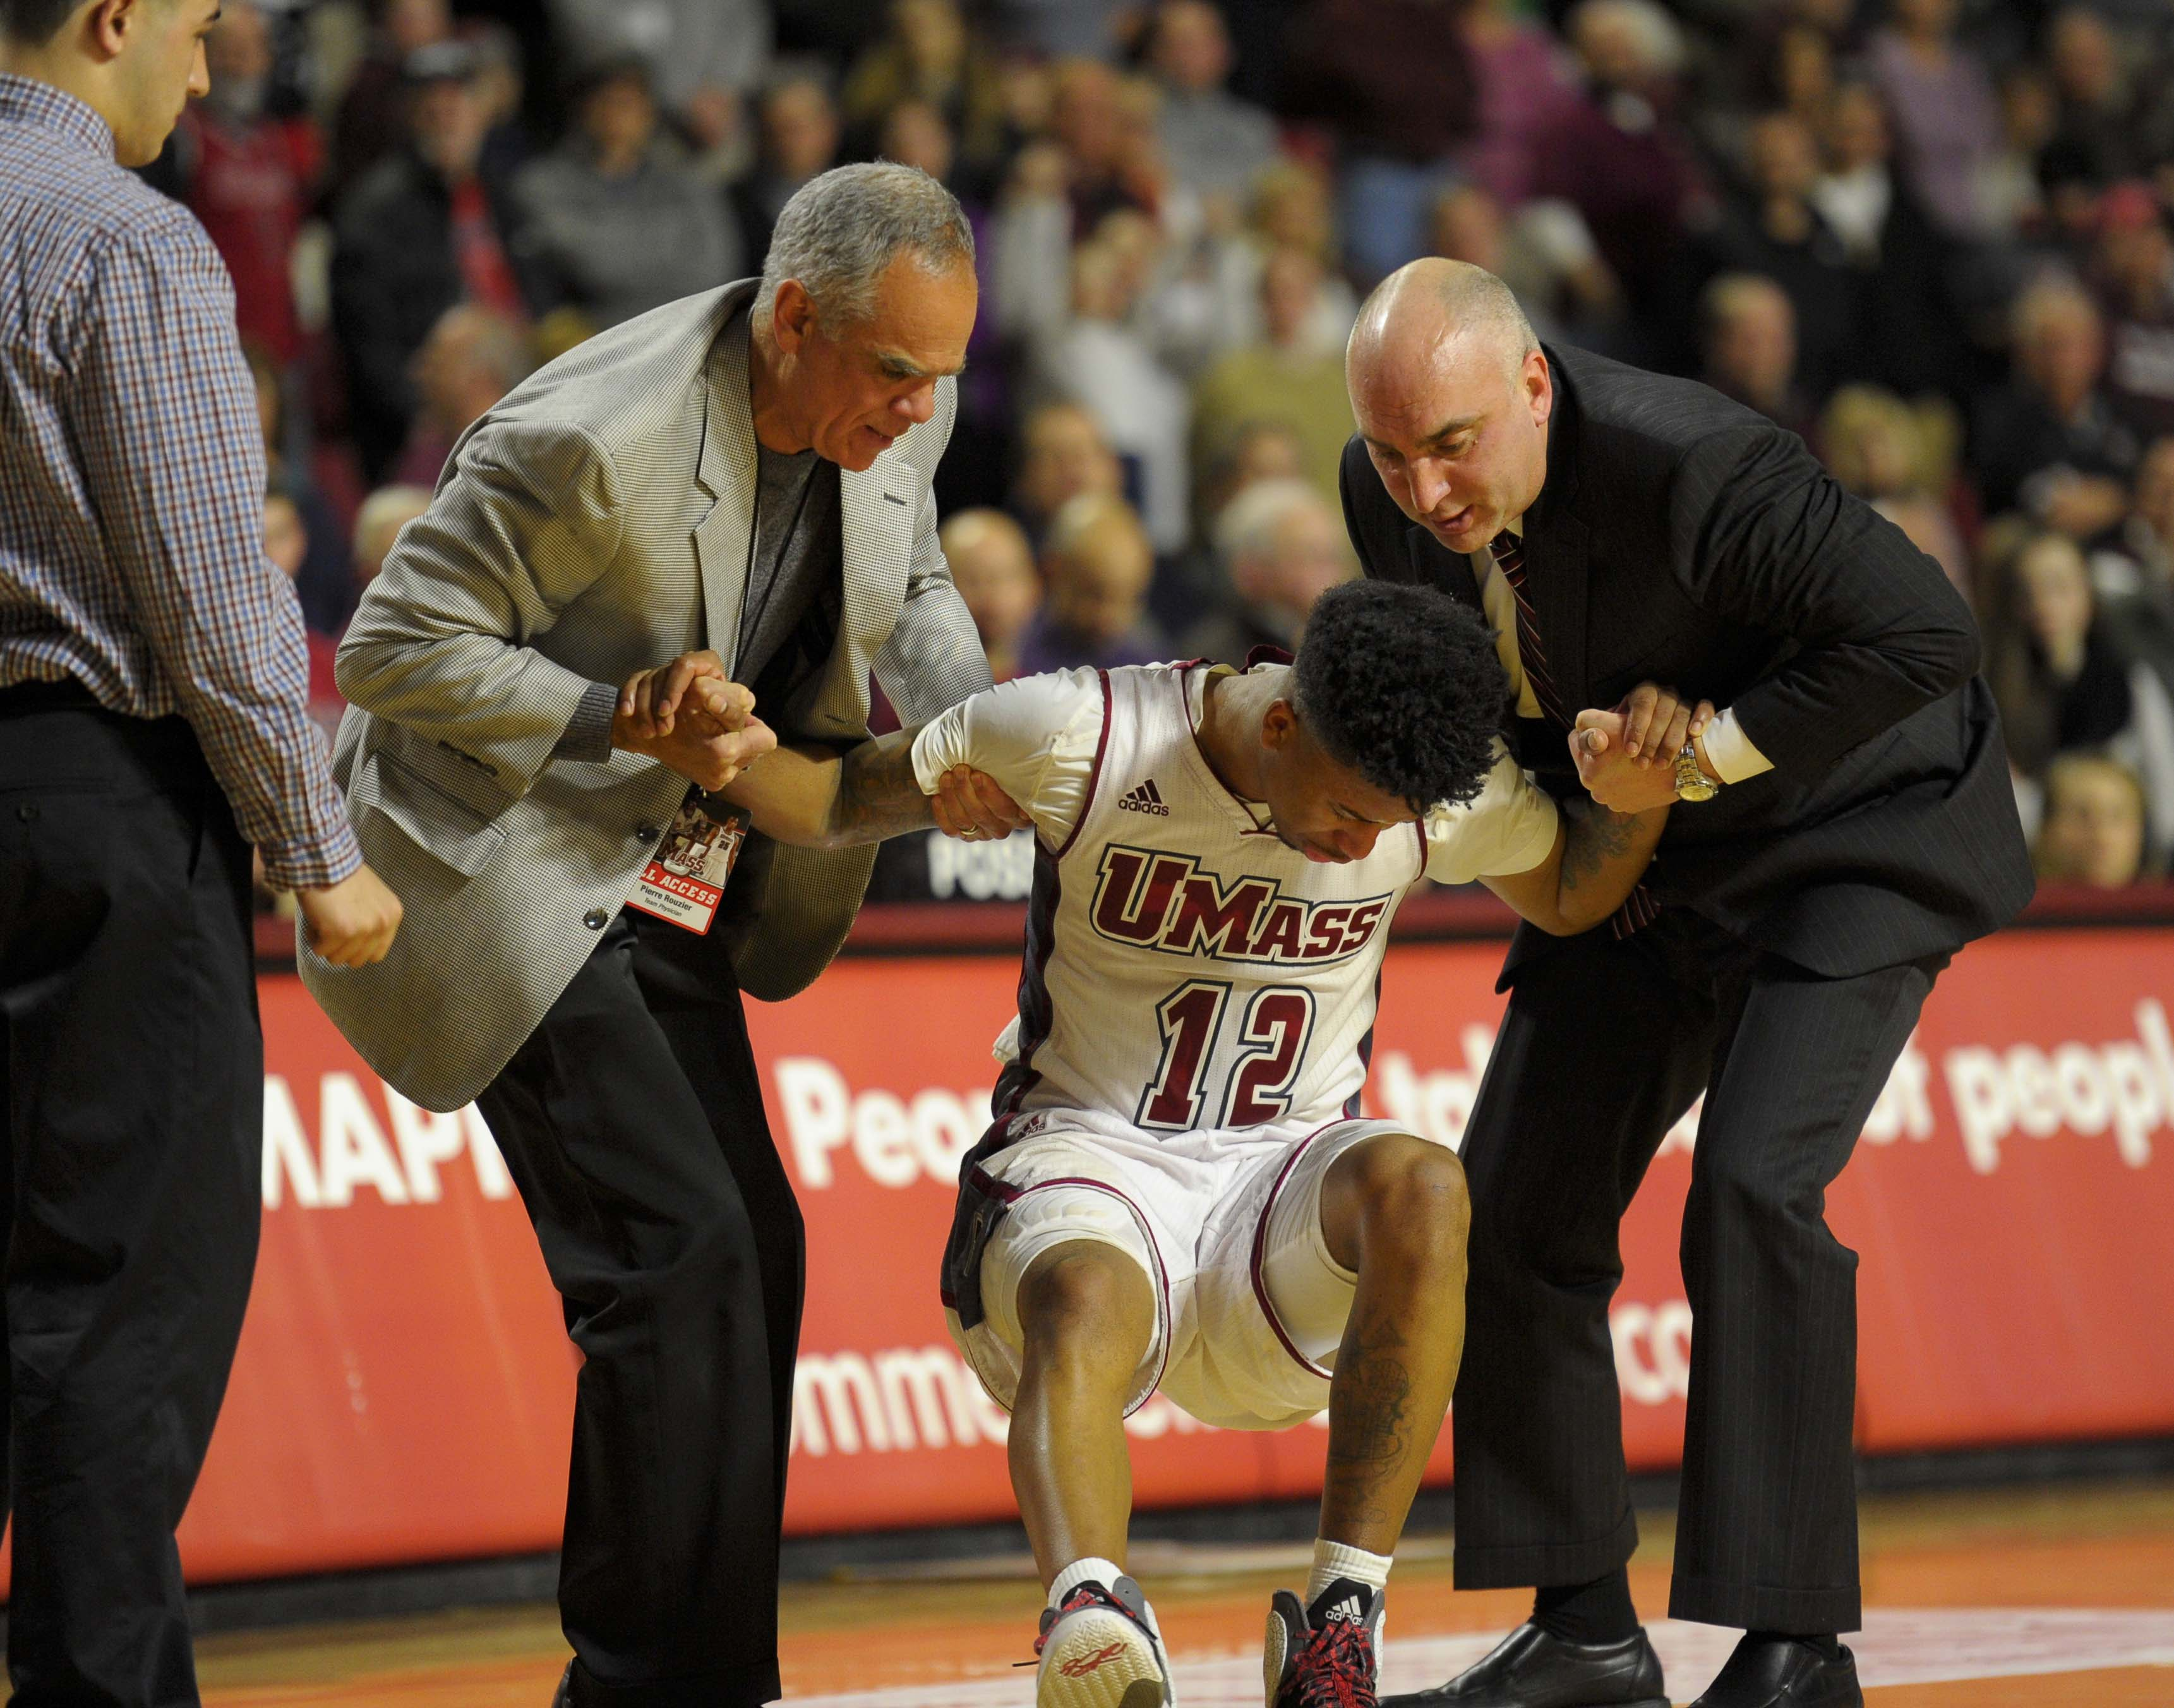 UMass will need pick themselves back up after their 2014-2015 campaign